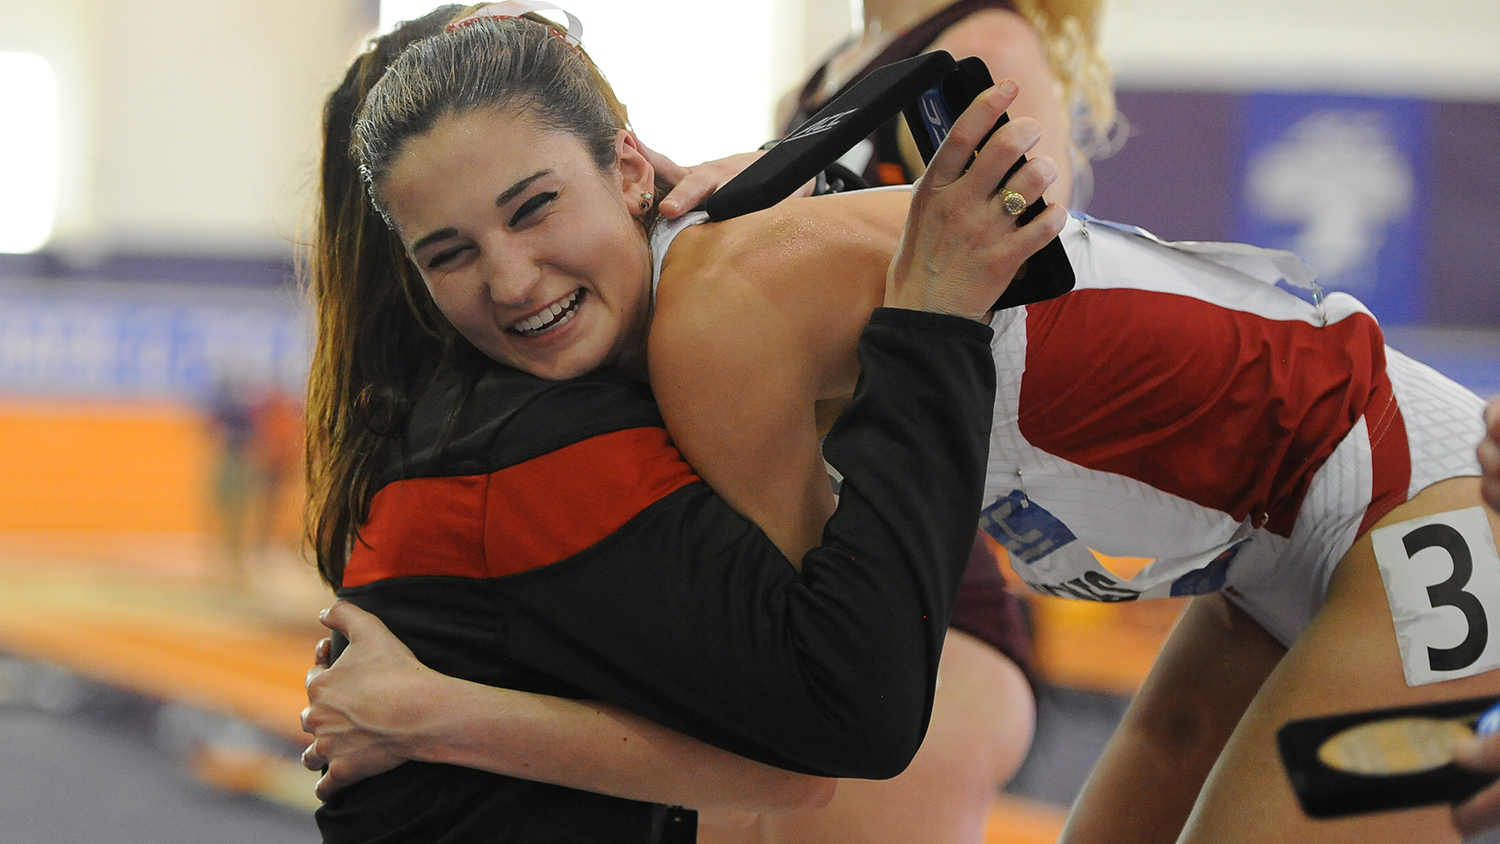 NC State cross country runner Elly Henes hugging her coach